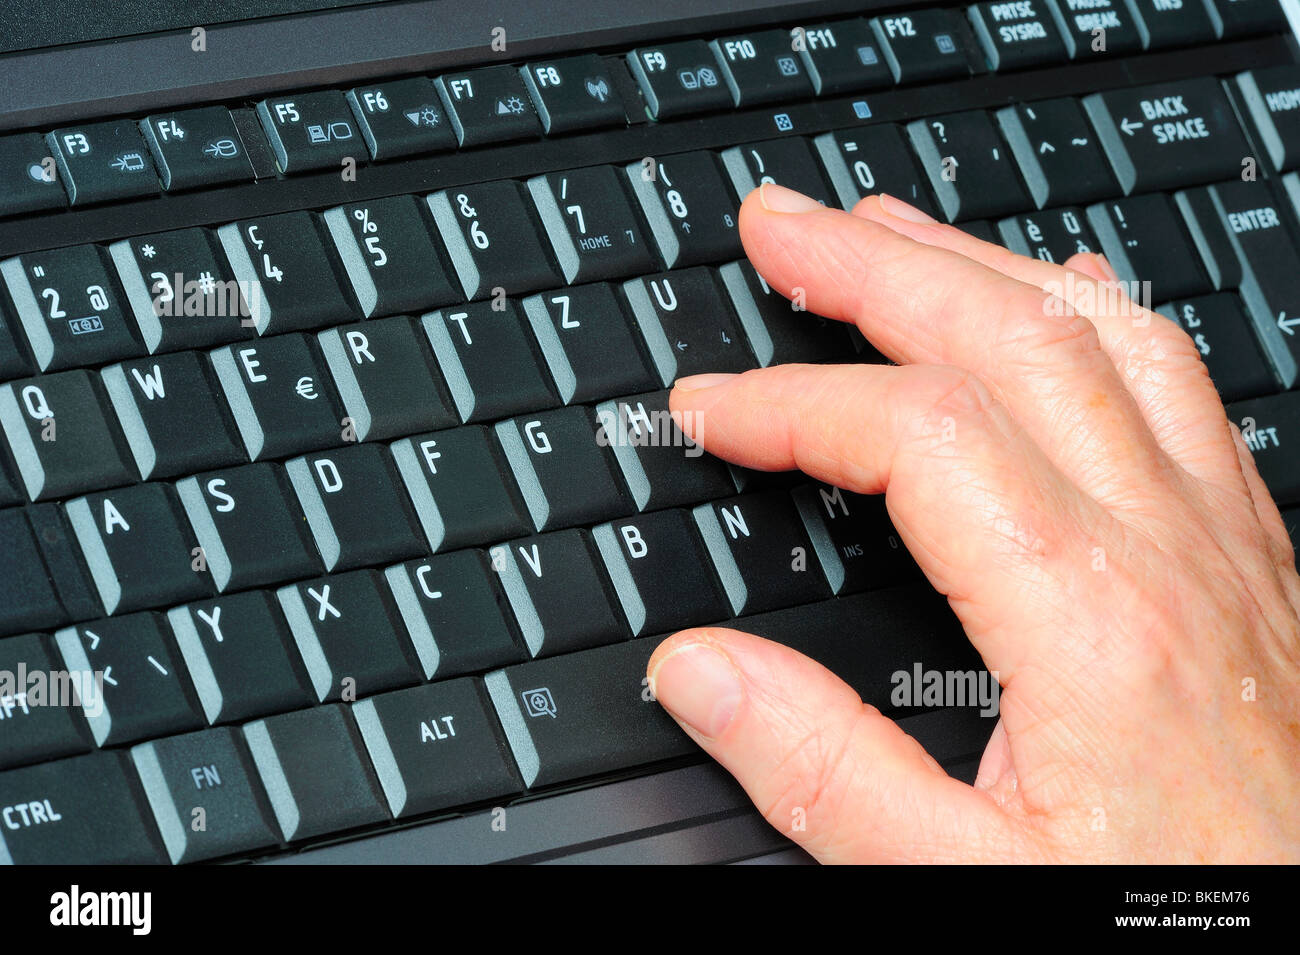 Close up view of a person using a french computer keyboard qwertz close up view of a person using a french computer keyboard qwertz with accented letters and other differences from the english spiritdancerdesigns Choice Image